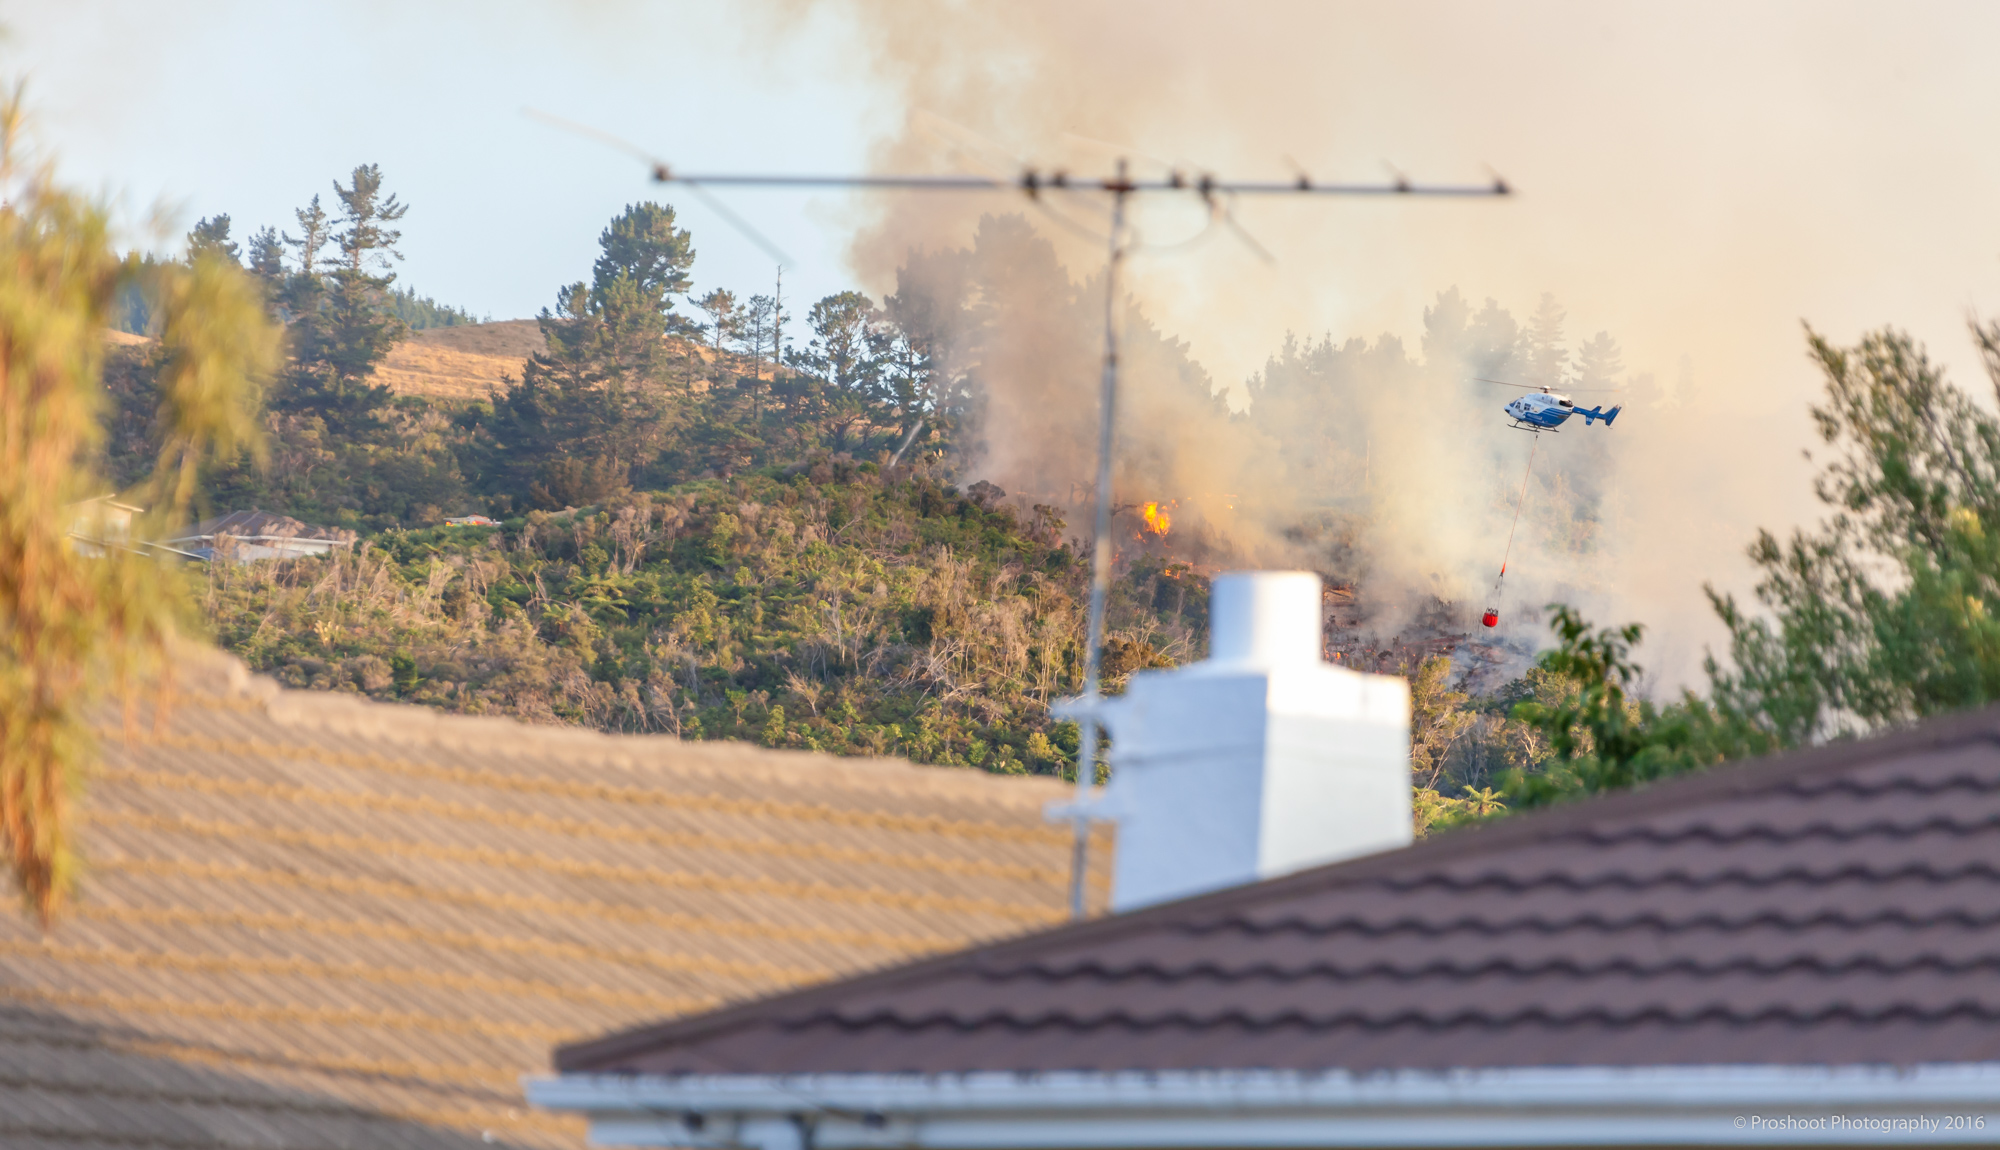 Upper Hutt Scrub Fire Images 5573